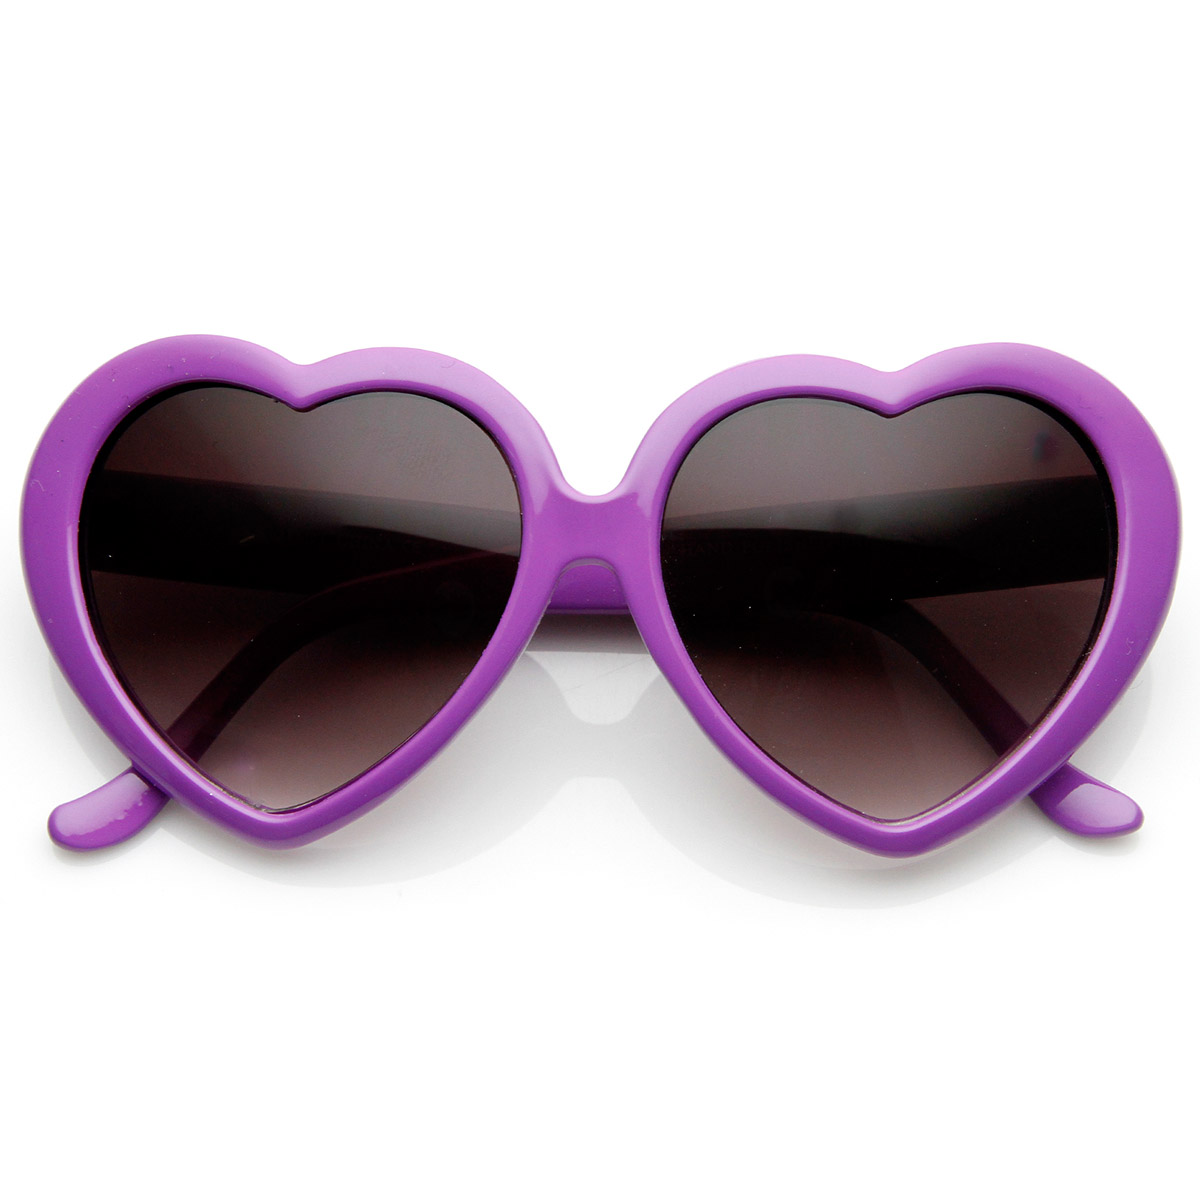 726aa910a605 Heart Shaped Sunglasses Bulk